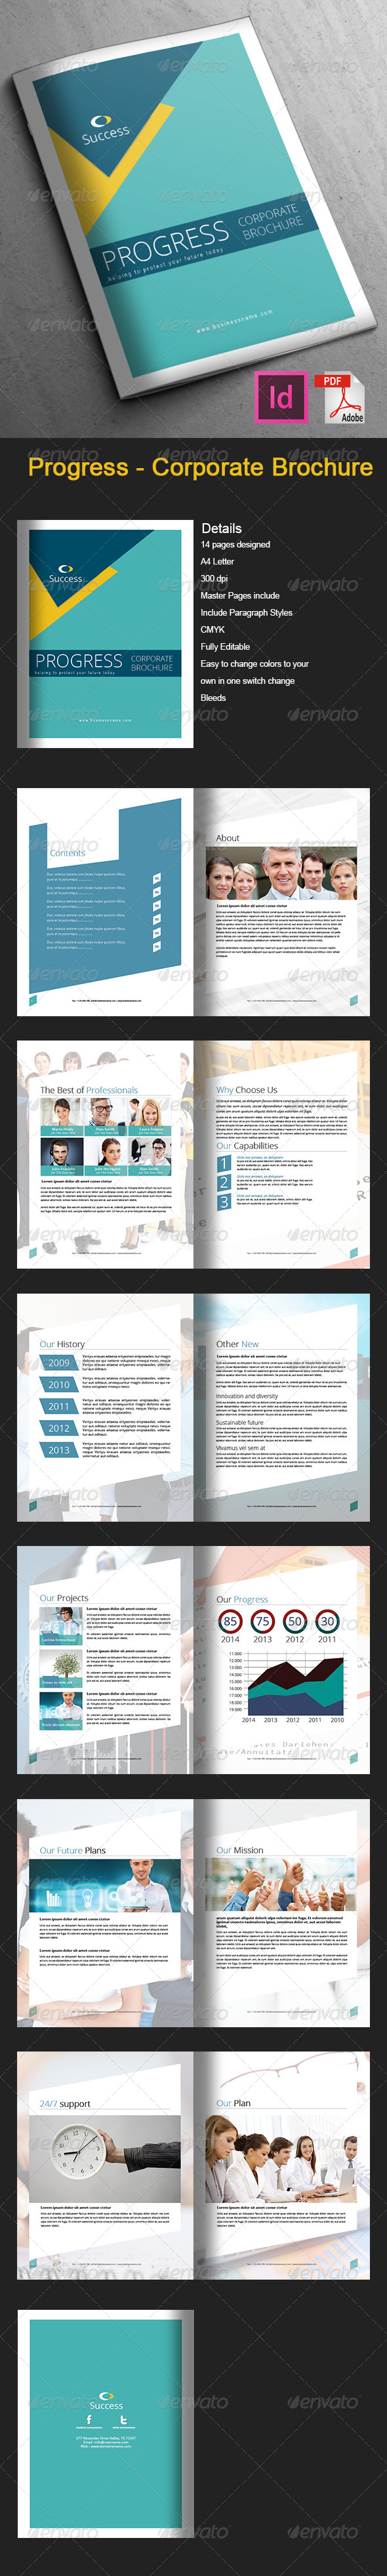 Progress - Corporate Brochure 14 pages  - Corporate Brochures